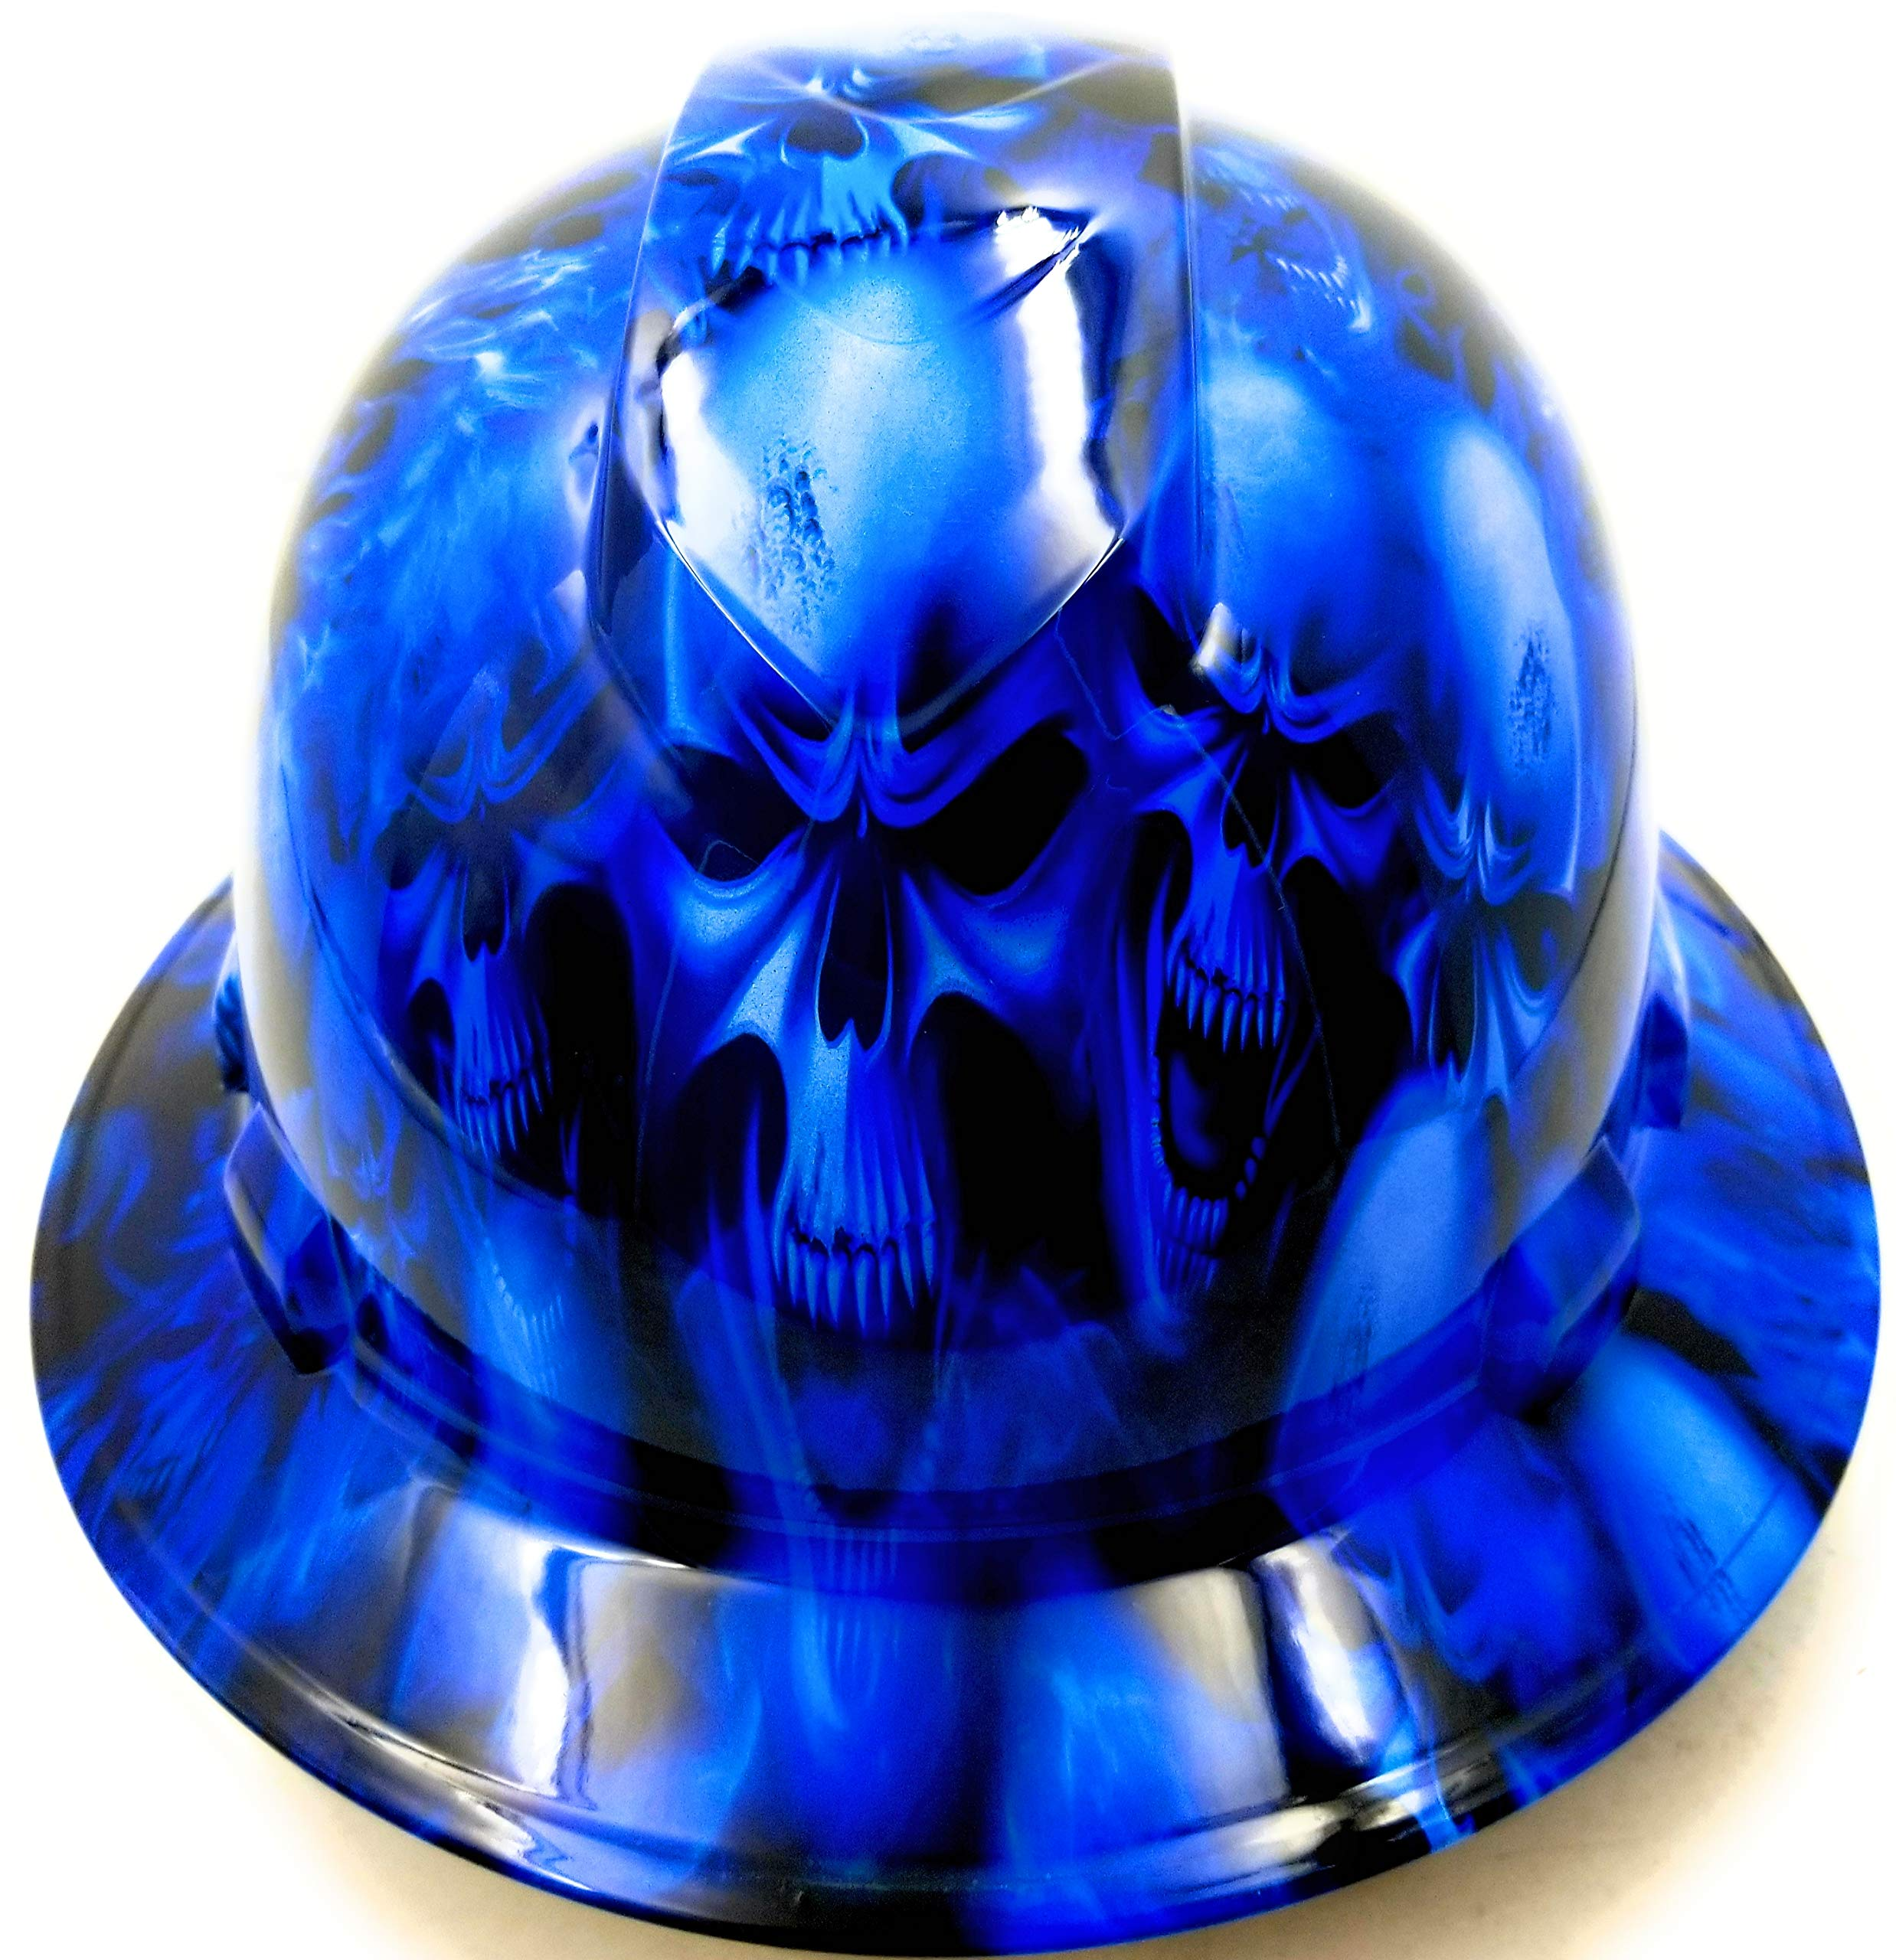 Wet Works Imaging Customized Pyramex Full Brim Full ICE Skull Limited Hard HAT with Ratcheting Suspension Custom LIDS Crazy Sick Construction PPE